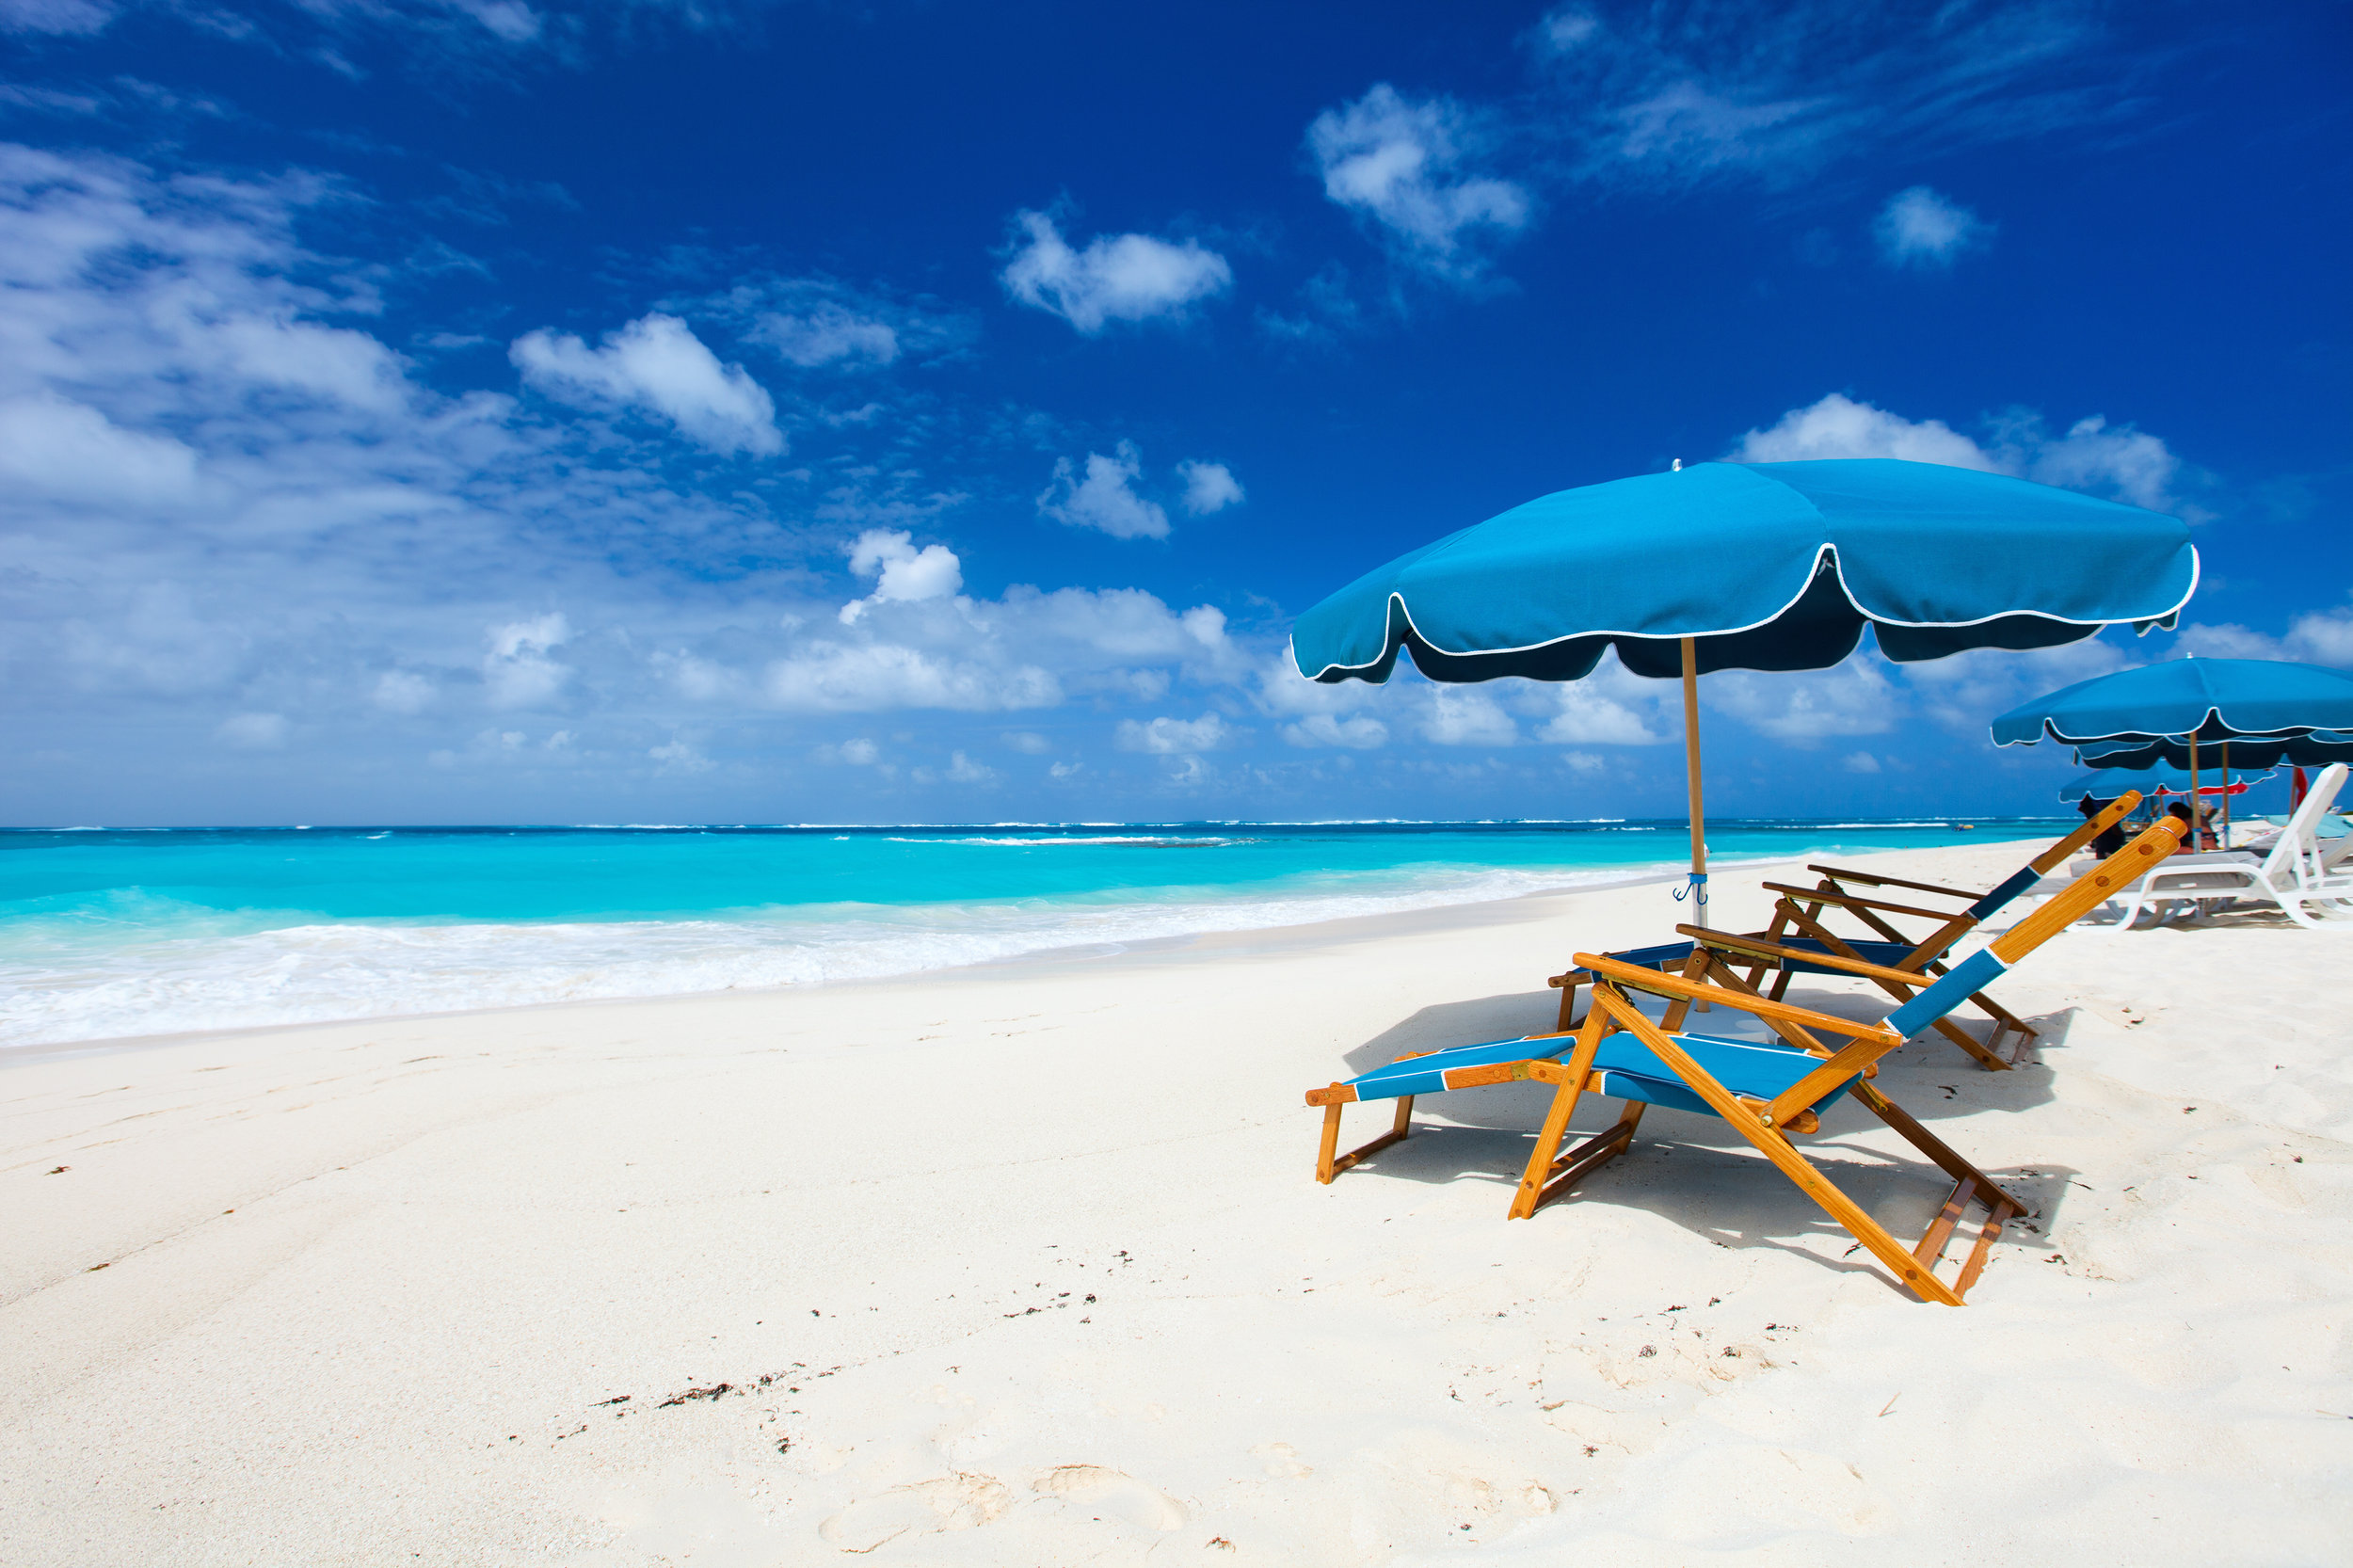 anguilla_bigstock-Chairs-and-umbrella-on-a-beaut-125232191.jpg